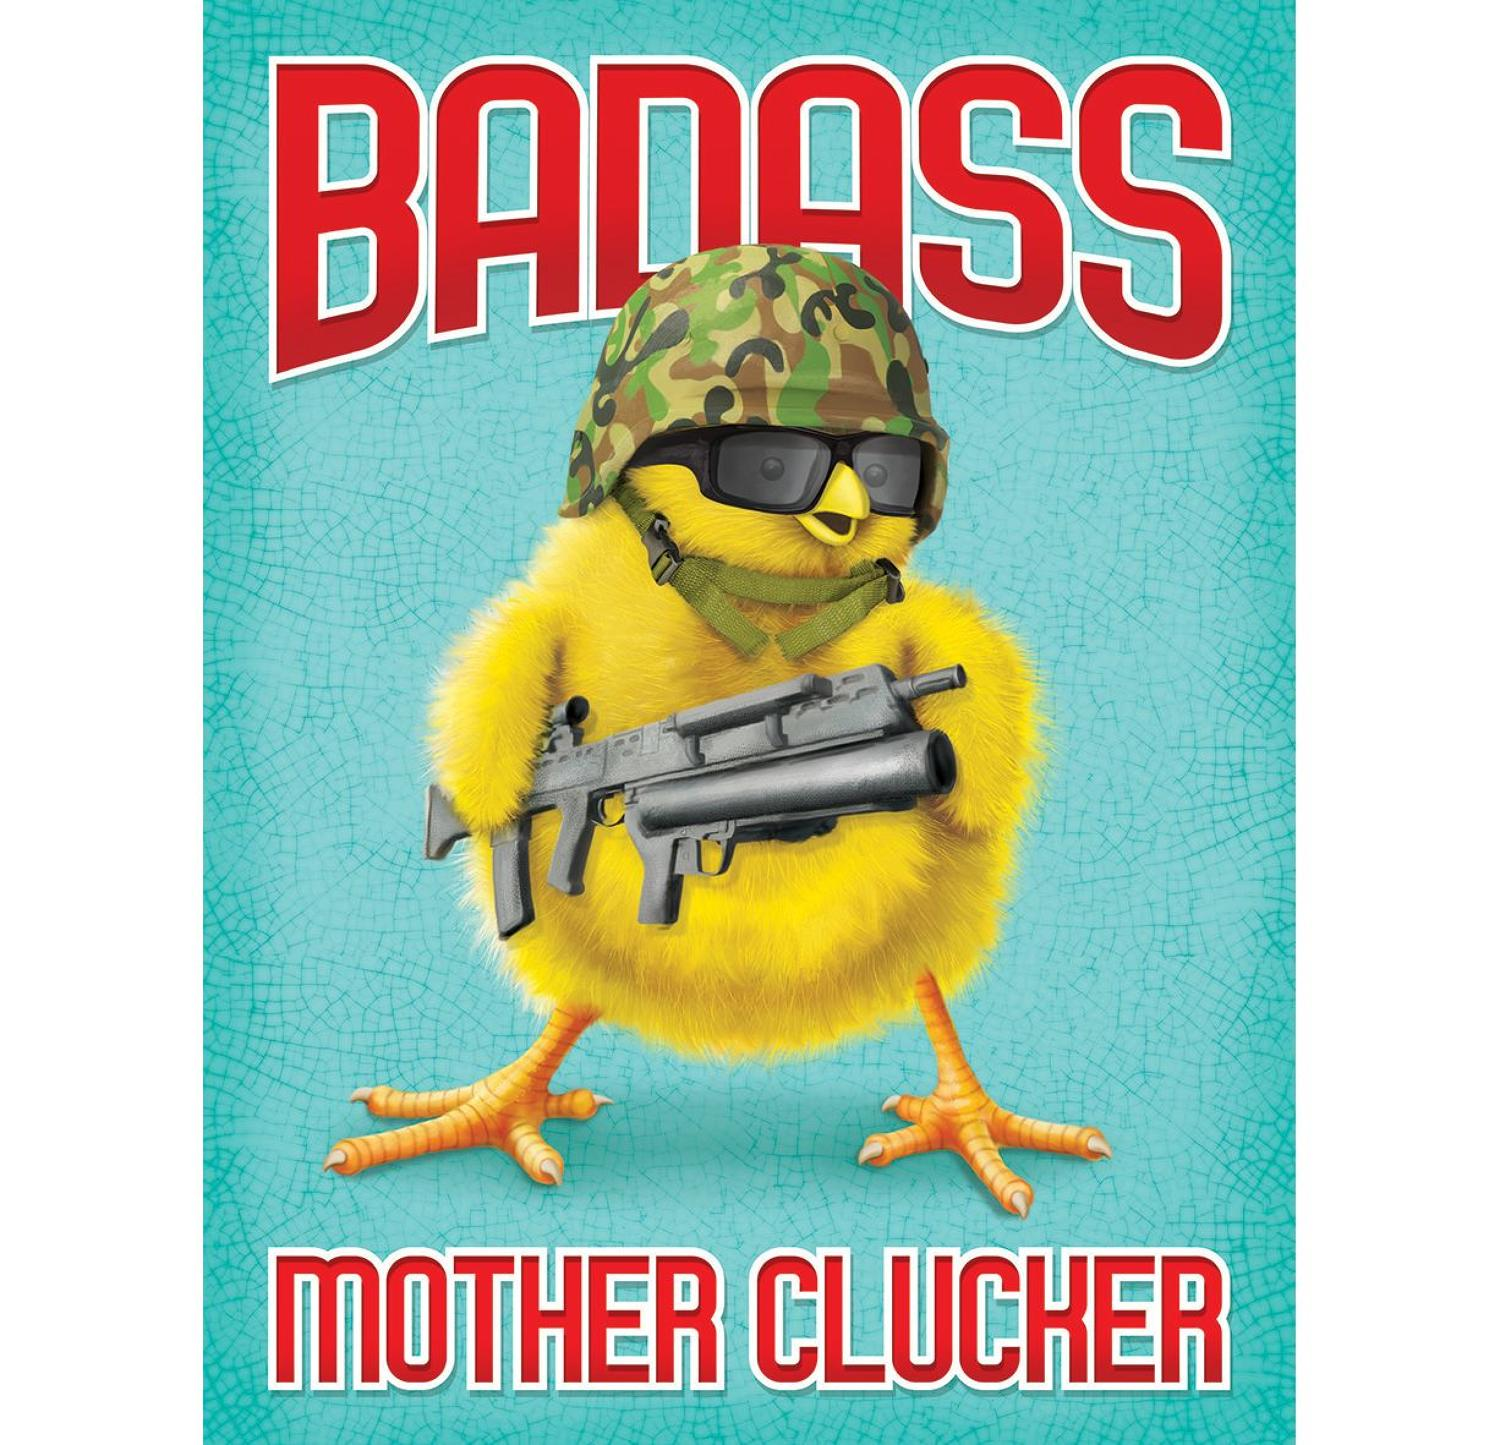 Badass Mother Clucker, metal wall sign